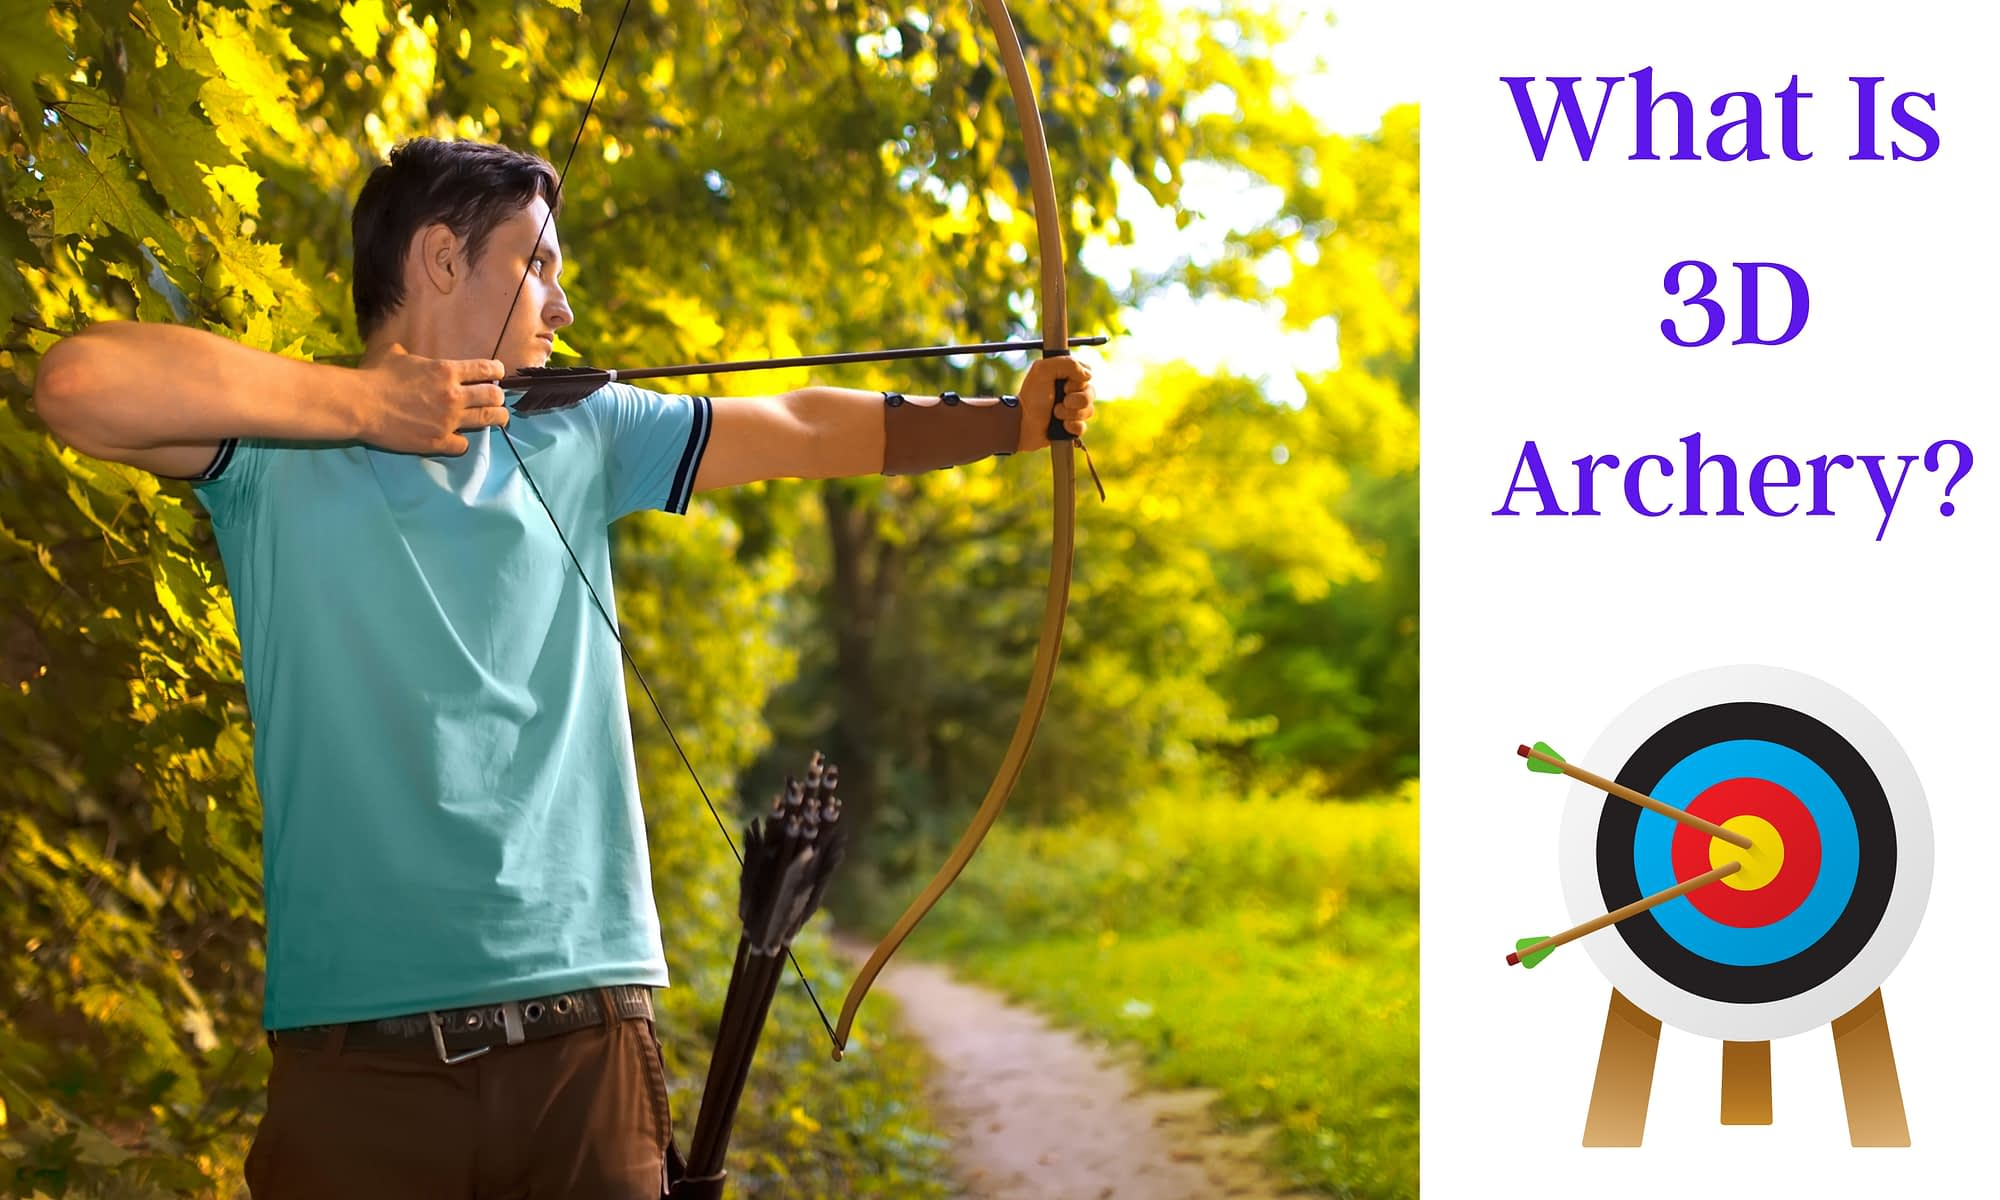 What is 3D Archery